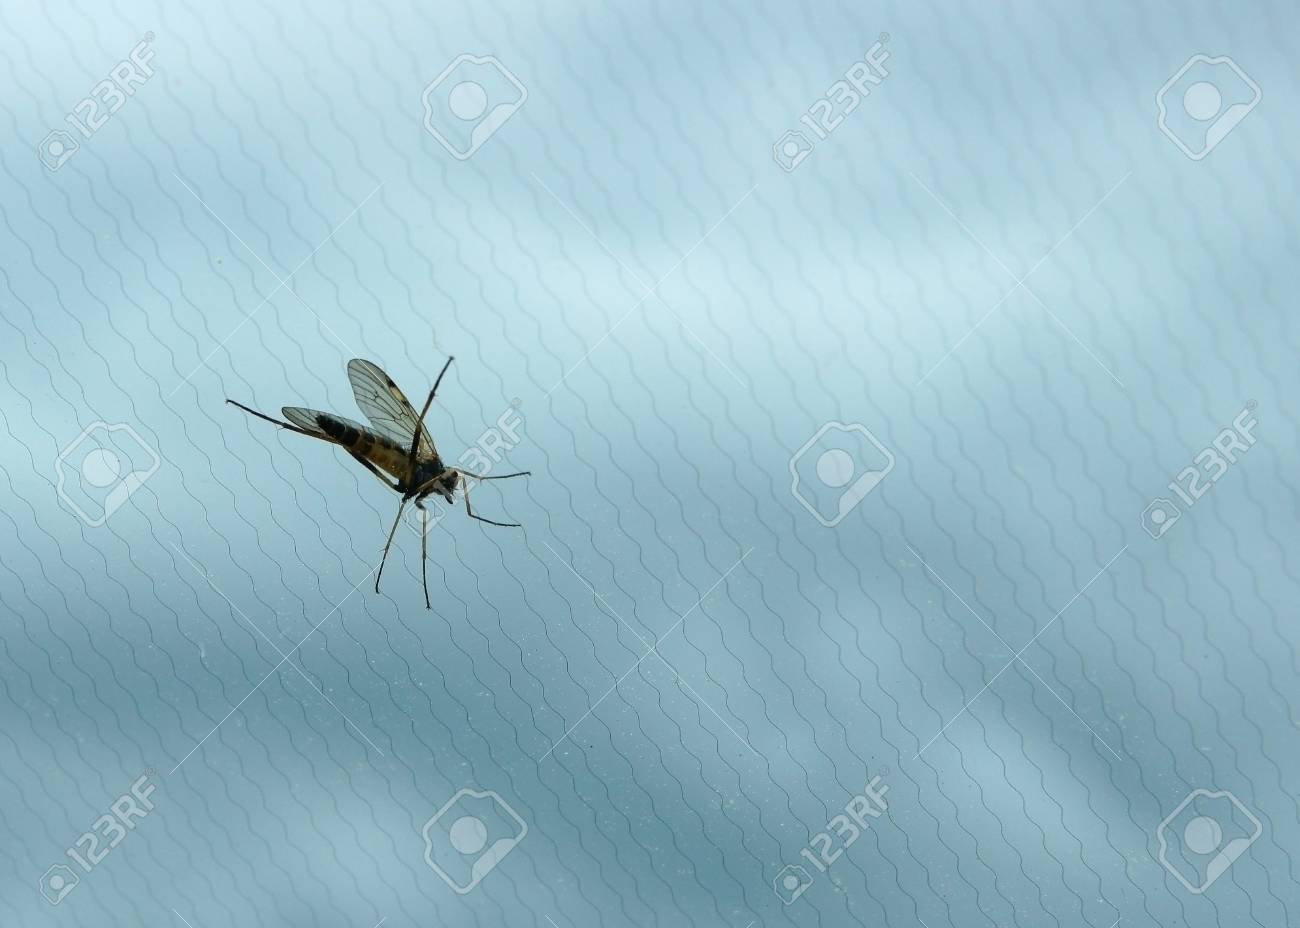 Mosquito on a background of a grid and clouds Stock Photo - 13986361